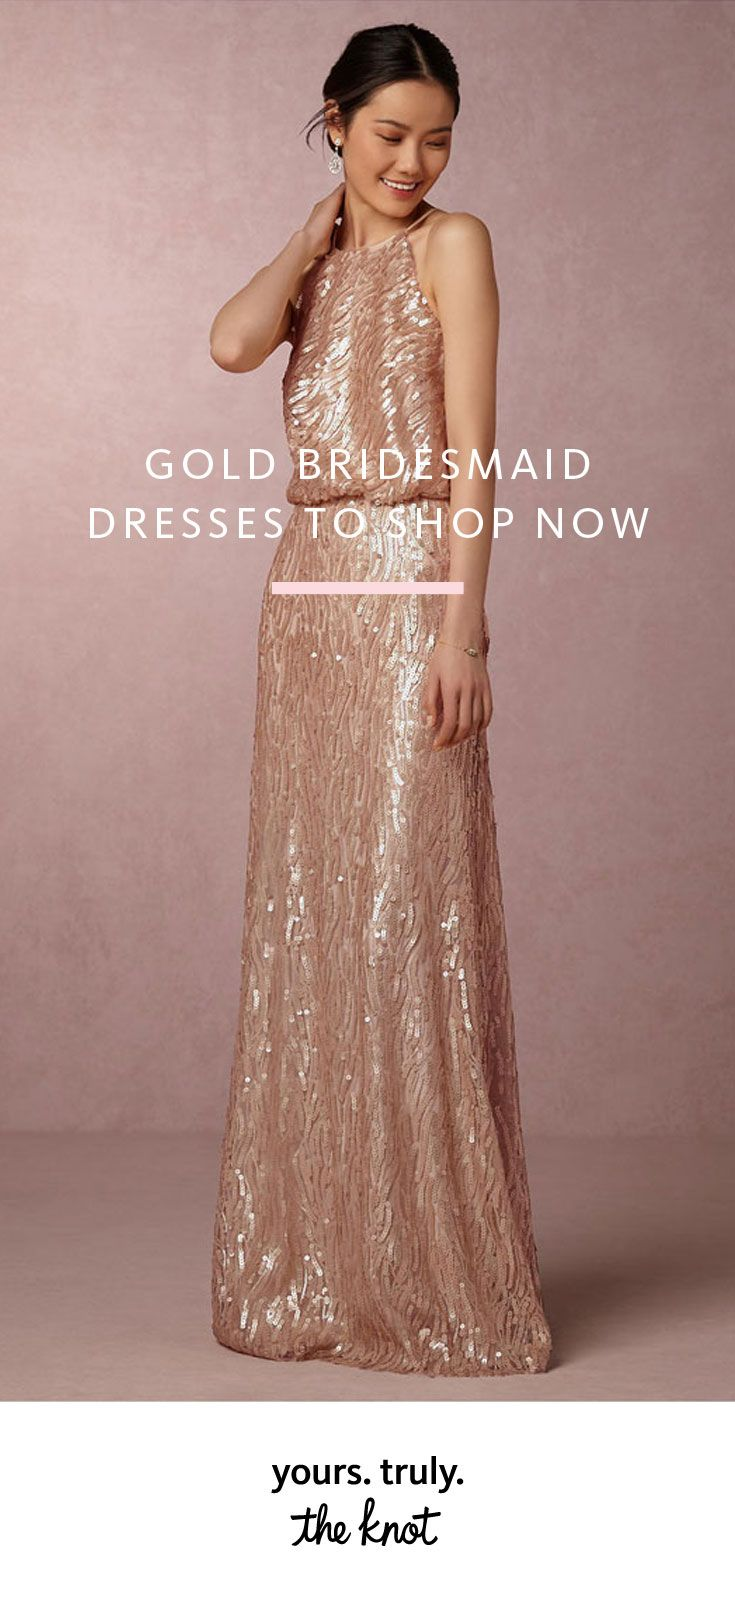 Long and Short Gold Metallic Bridesmaid Dresses to Shop Now |